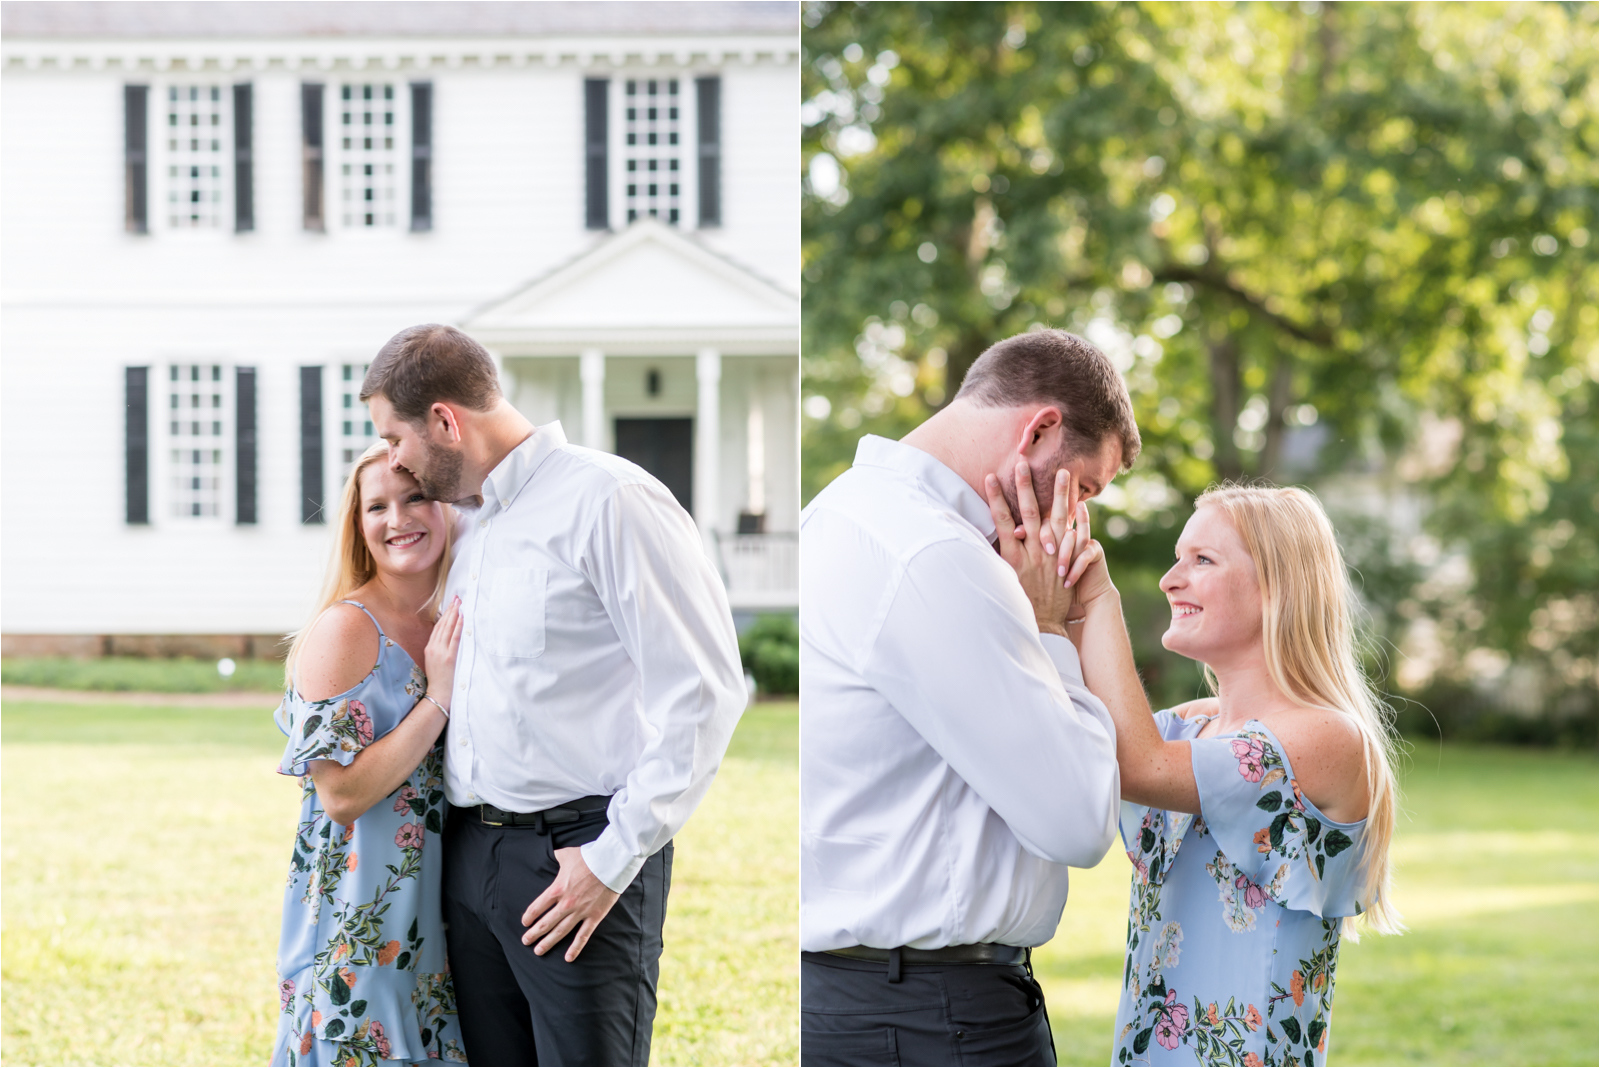 engagement-session-thanksgiving-proposal-story-man-woman-white-collared-shirt-blue-floral-dress-flower-garden-gardens-tuckahoe-plantation-richmond-virginia-jessica-capozzola-focus-on-joy-photography-richmond-virginia-rva